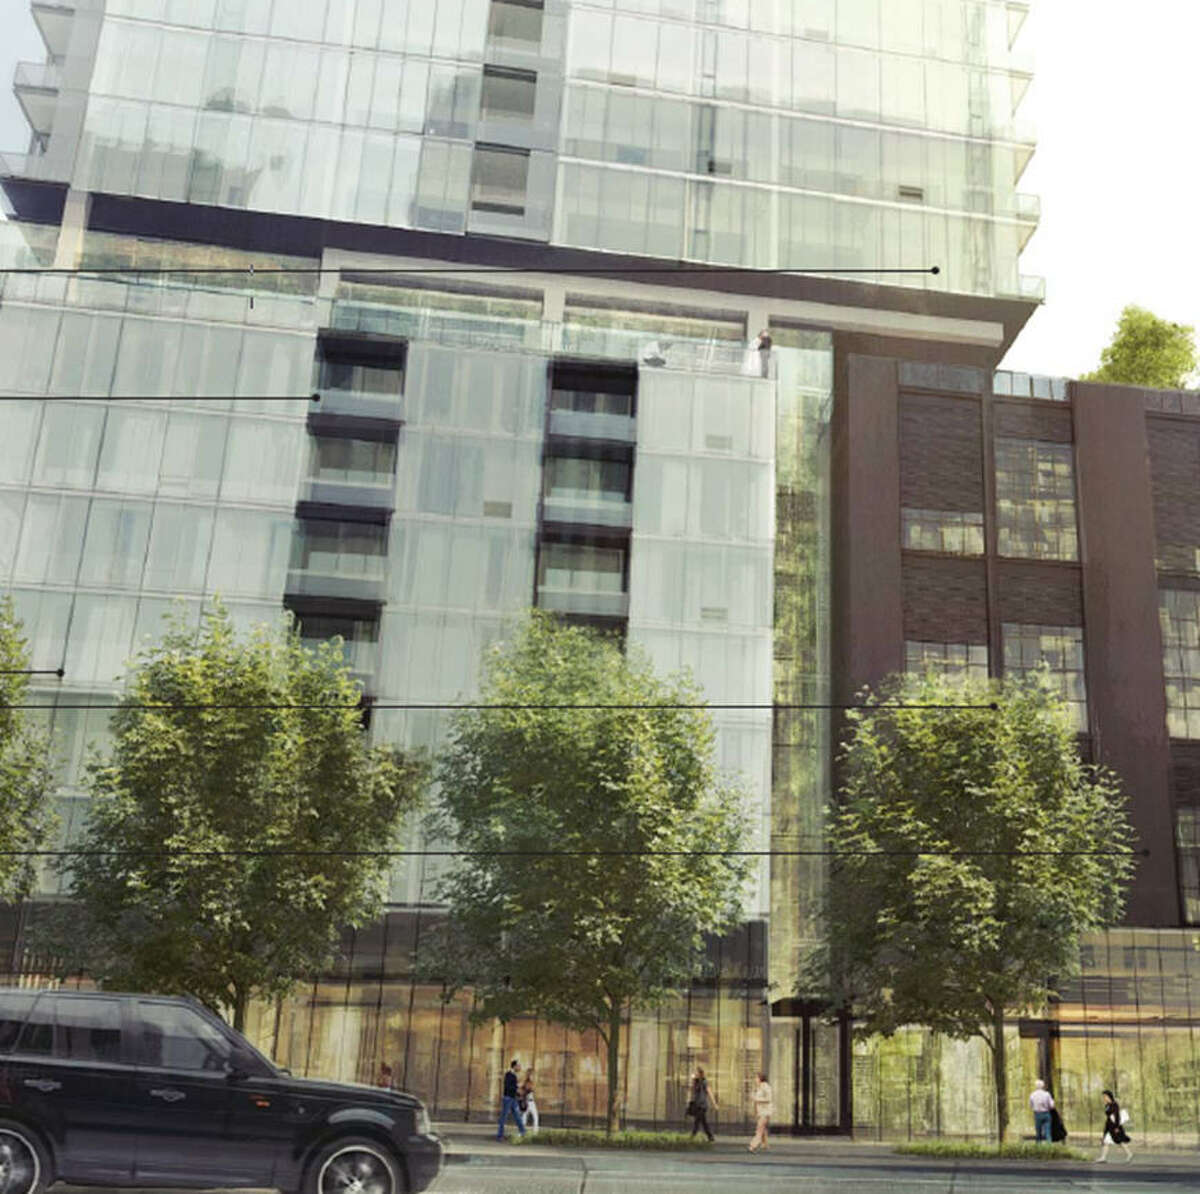 $104 million - 1430 2nd Ave. - This 35-story structure includes 290 residential units above retail and restaurant spaces.